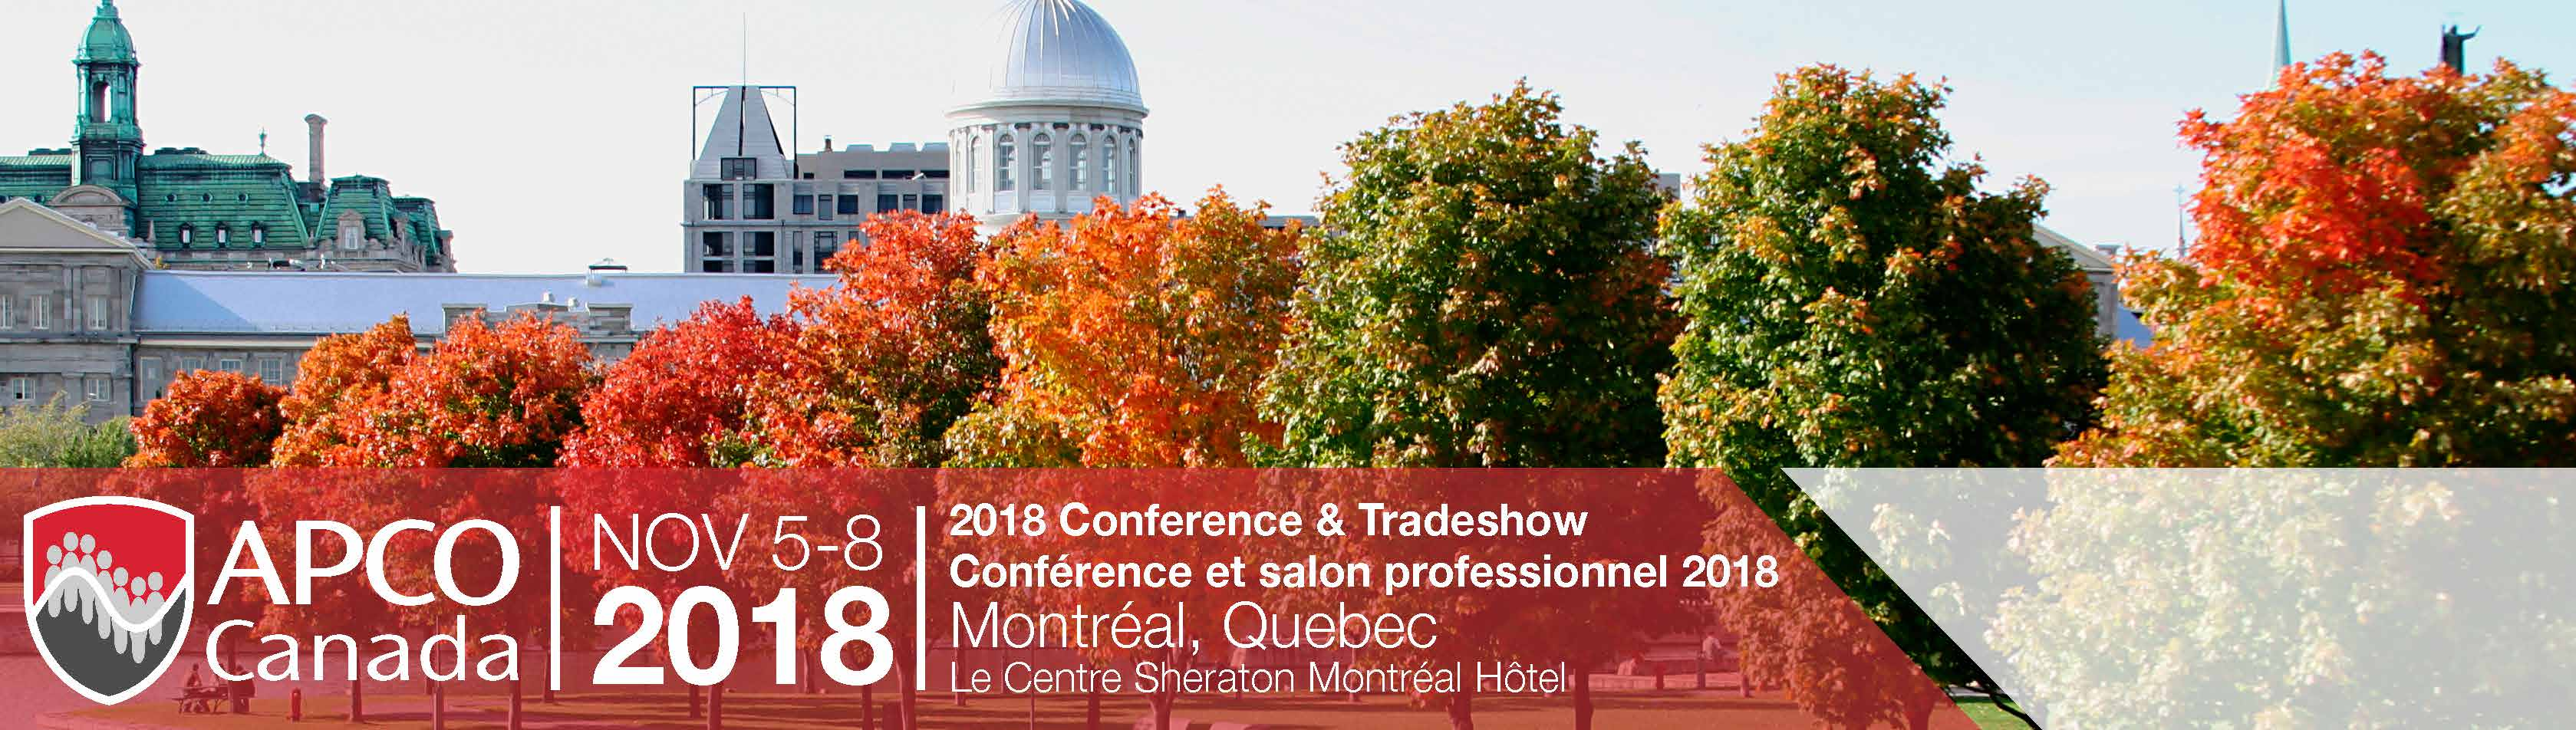 APCO Canada Conference & Tradeshow - Volunteer Registration